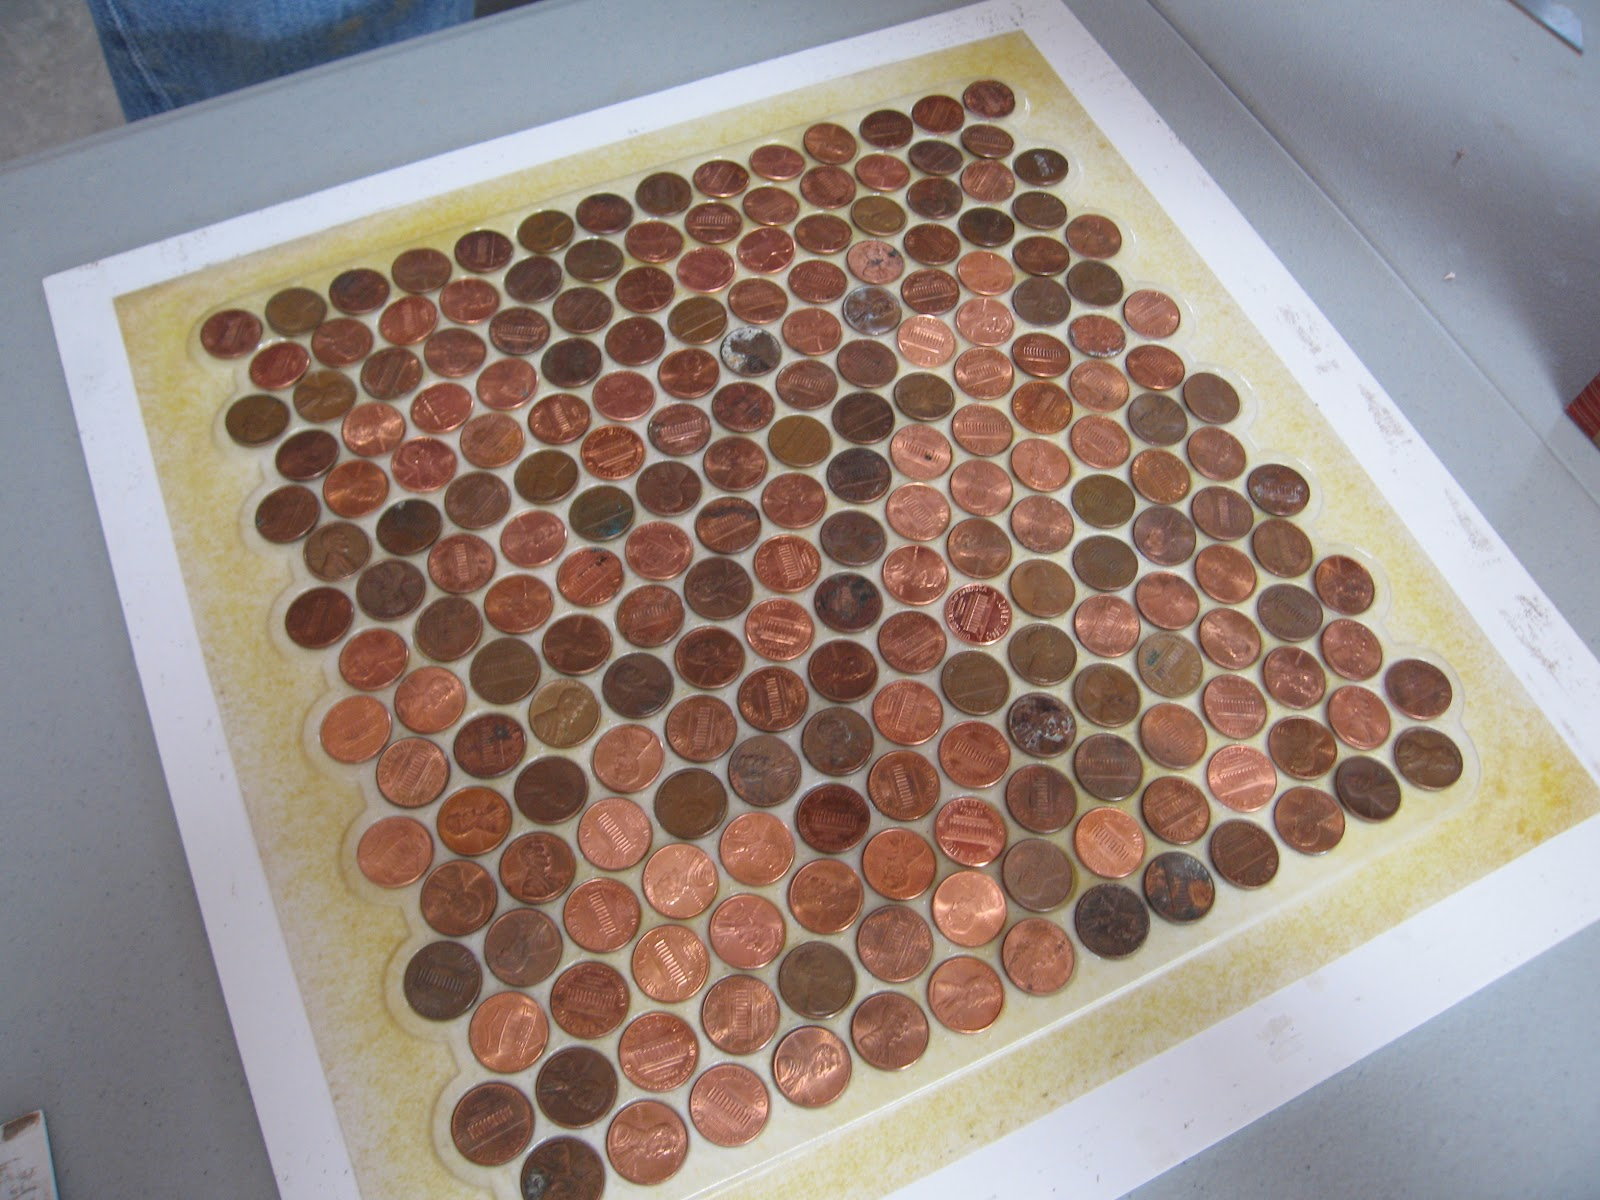 Alpentile Glass Tile Swimming Pools Have You Considered Copper - Copper penny floor grout